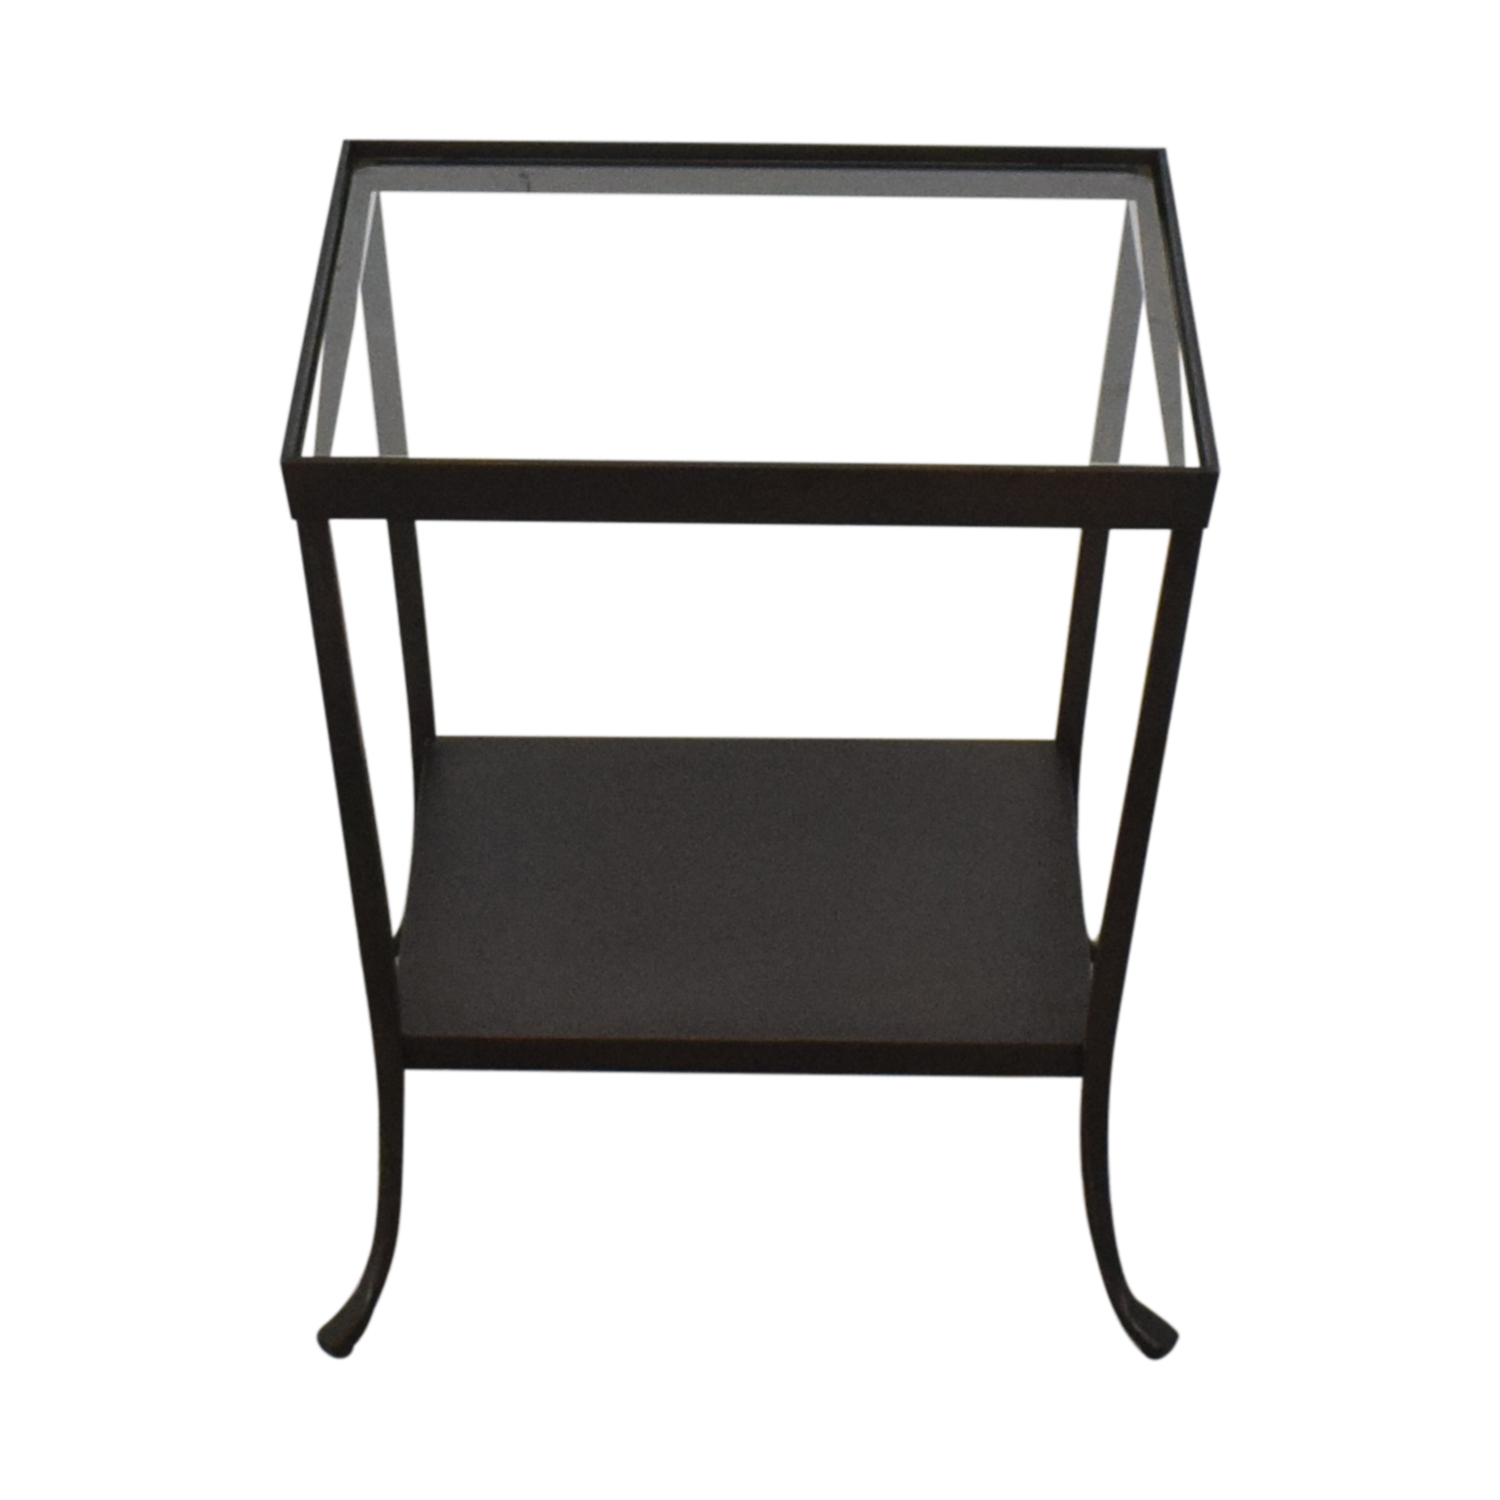 Crate & Barrel Crate & Barrel Square Glass & Metal Accent End Table nyc